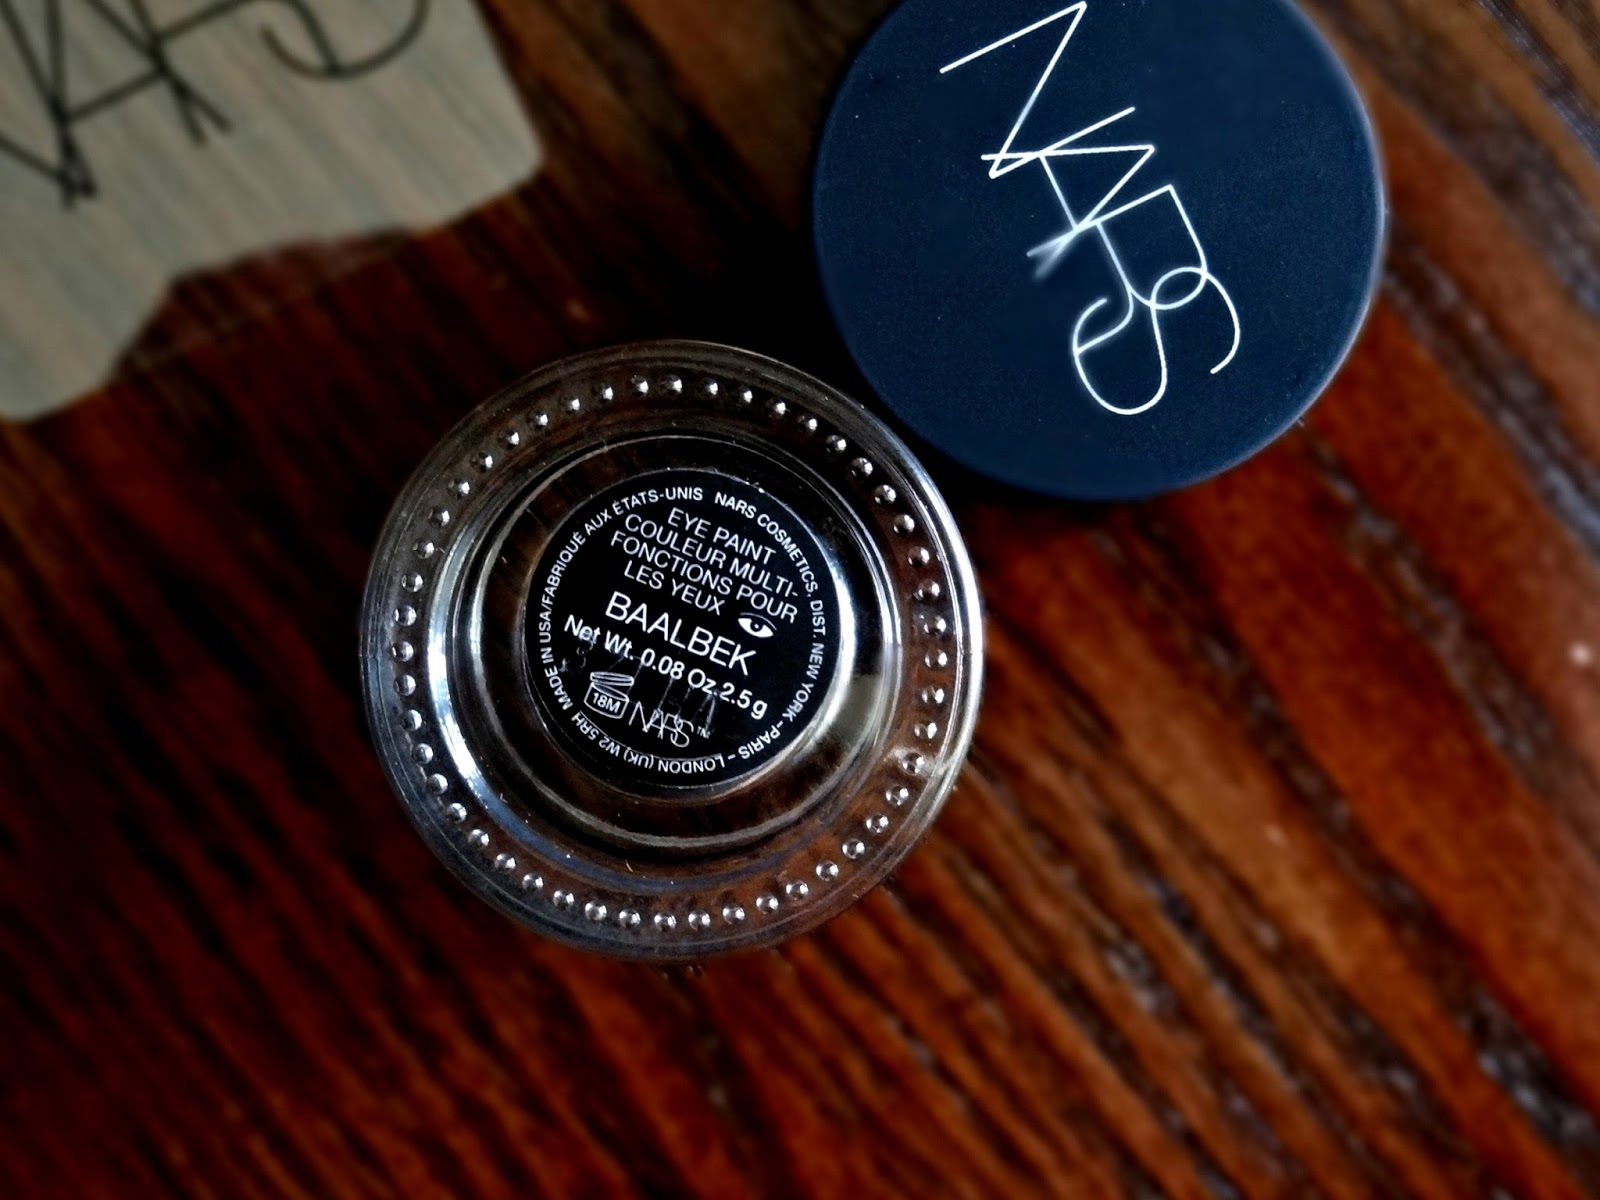 NARS Baalbek Eye Paint NARS Adult Swim Summer 2014 Collection Review, Photos, Swatches, EOTD